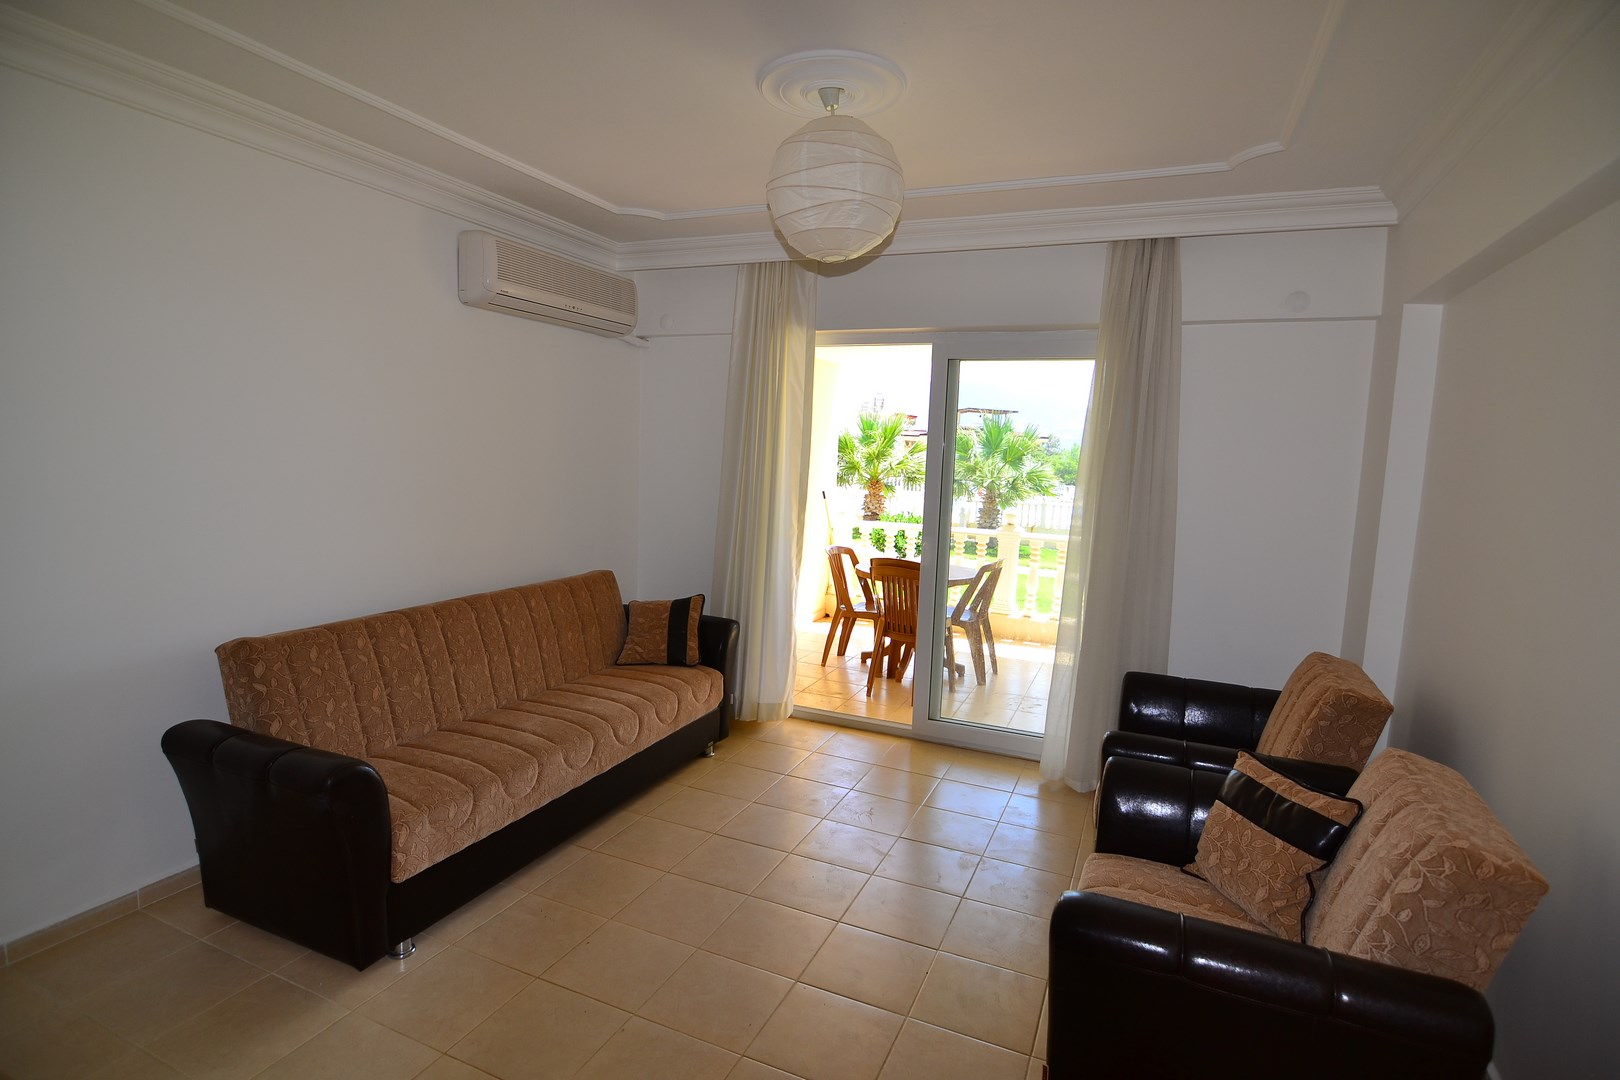 2 bedroom apartment for sale in Akbuk (Now Sold)